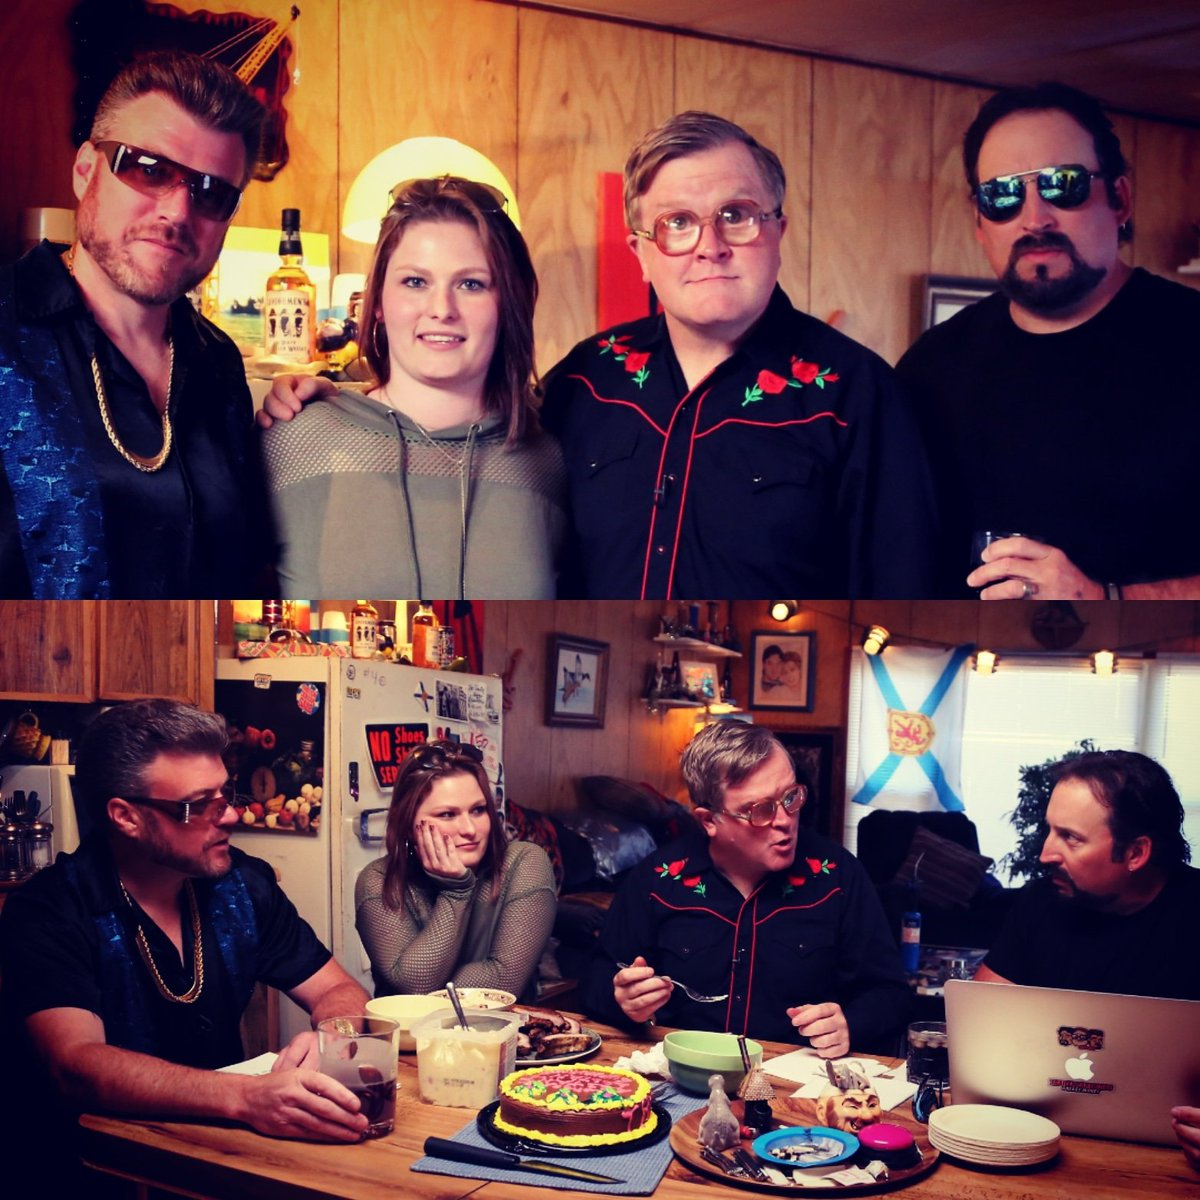 Jeanna Harrison Aka Trinity On Twitter Had Some Fun With The Boys Last Week Trailerparkboys Parkafterdark Trailerparkboys Swearnet Jeanna harrison the actor is aproximately 25 years old as she was 15 in 2001. jeanna harrison aka trinity on twitter